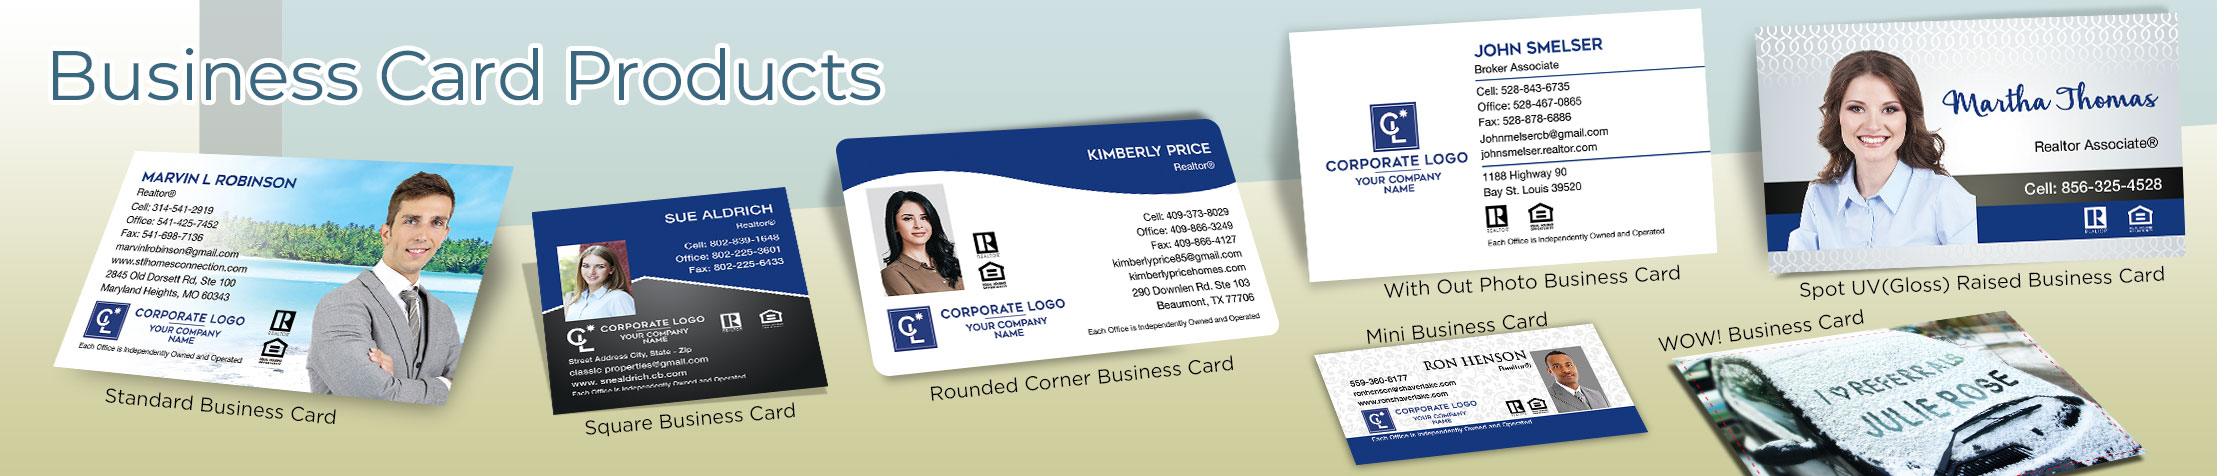 Coldwell Banker Real Estate Business Card Products - Coldwell Banker  - Unique, Custom Business Cards Printed on Quality Stock with Creative Designs for Realtors | BestPrintBuy.com